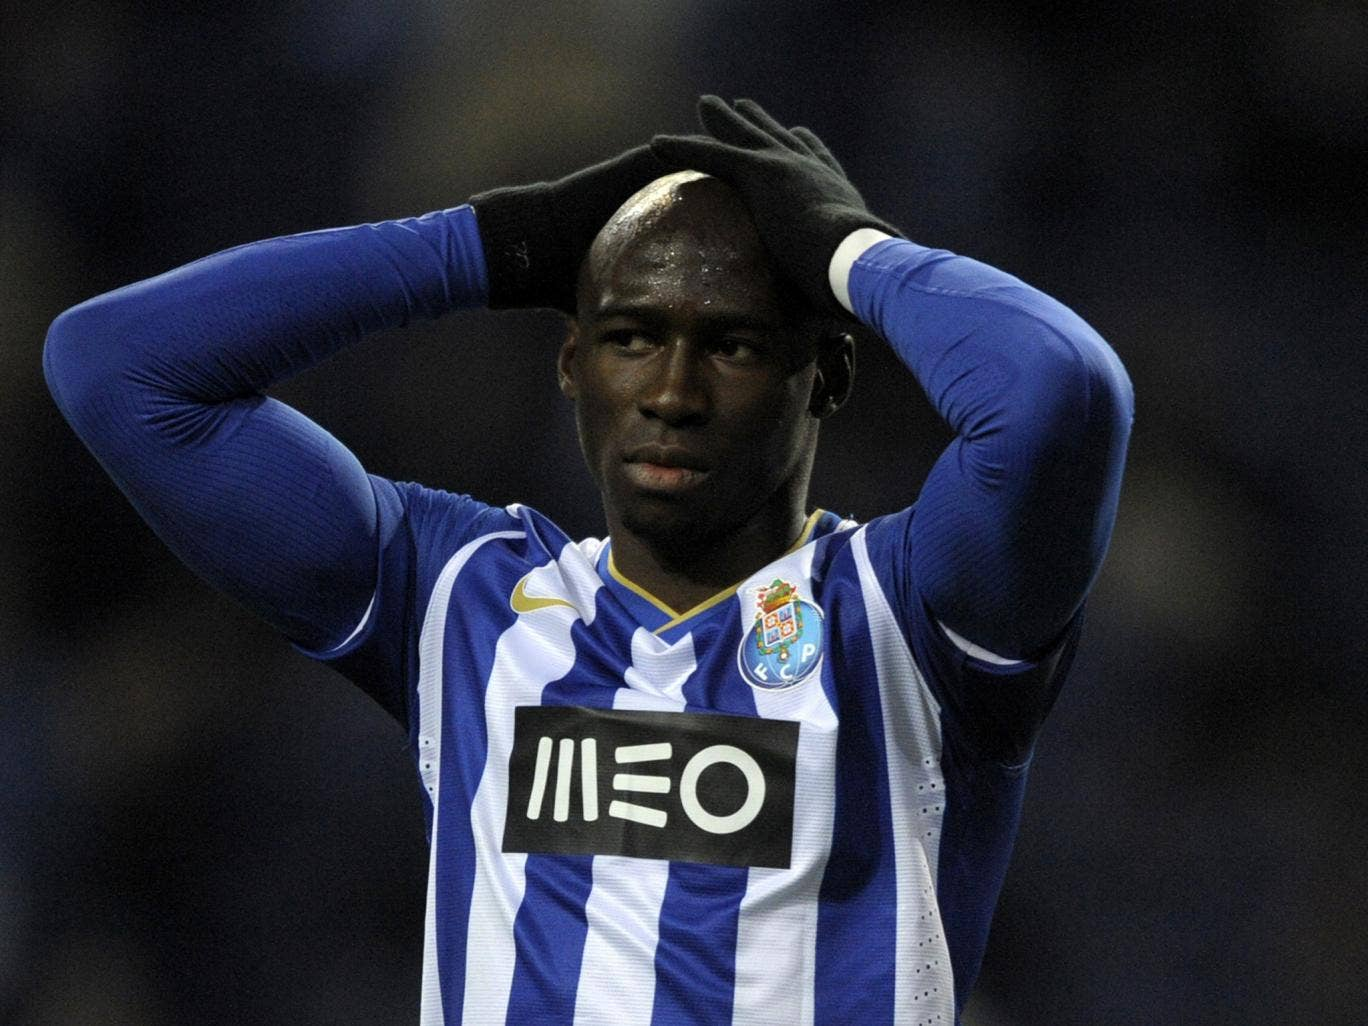 Eliaquim Mangala has also attracted interest from Manchester United and Paris Saint-Germain